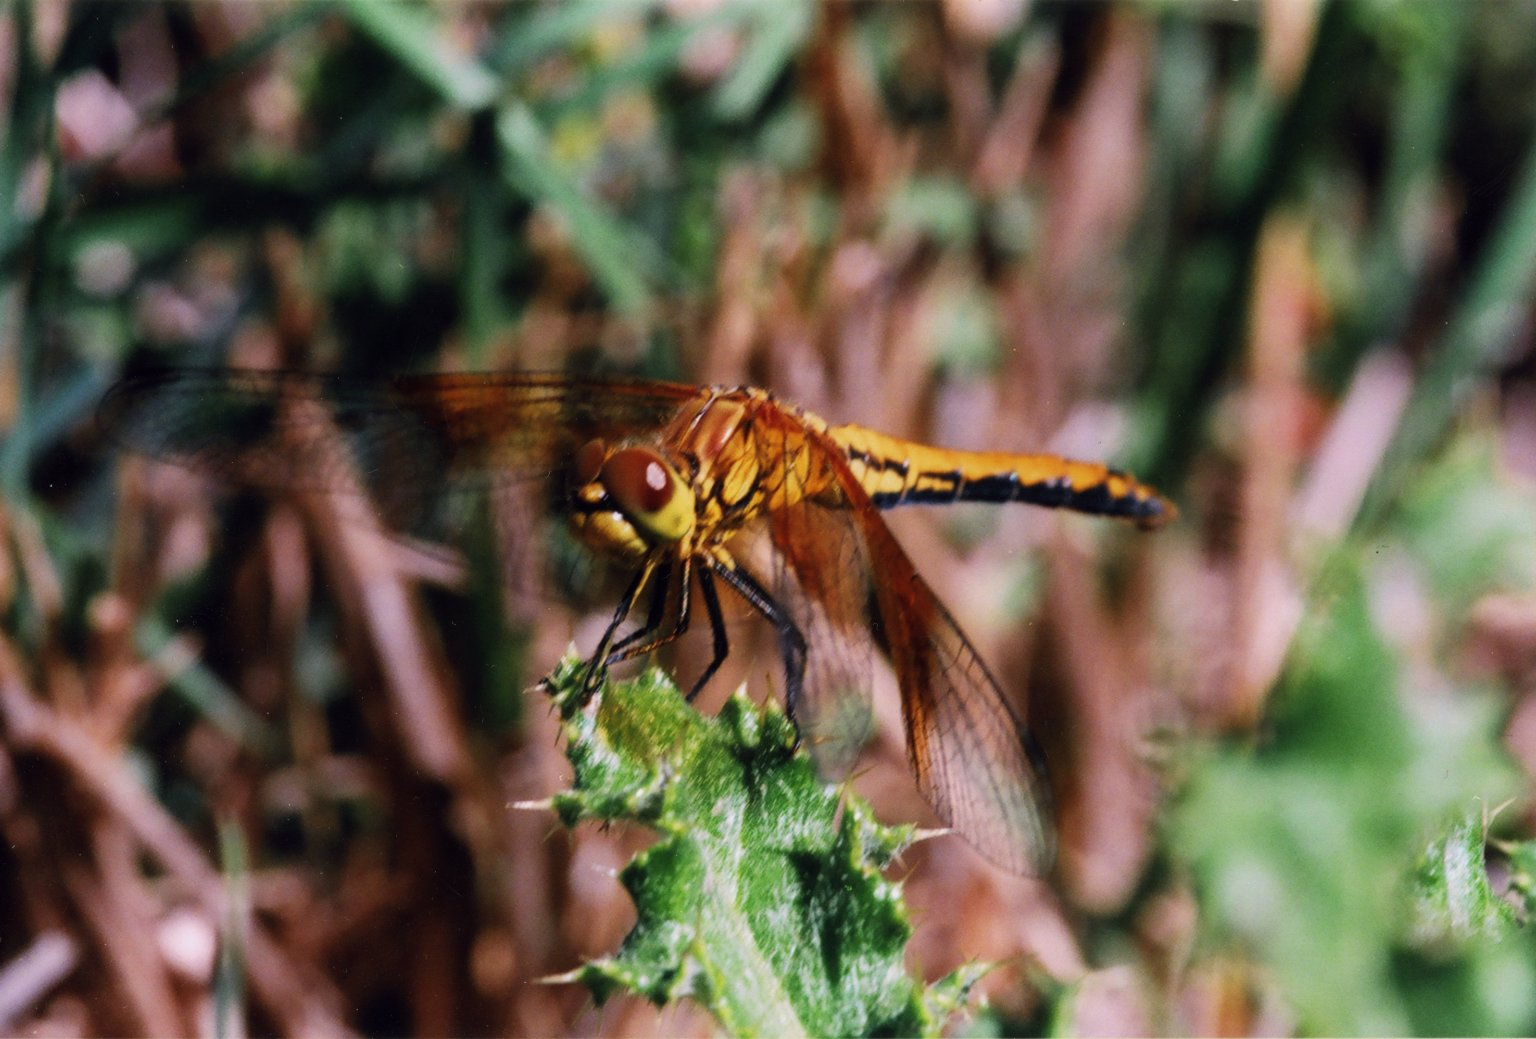 Close up of brown and yellow dragonfly on green leaf